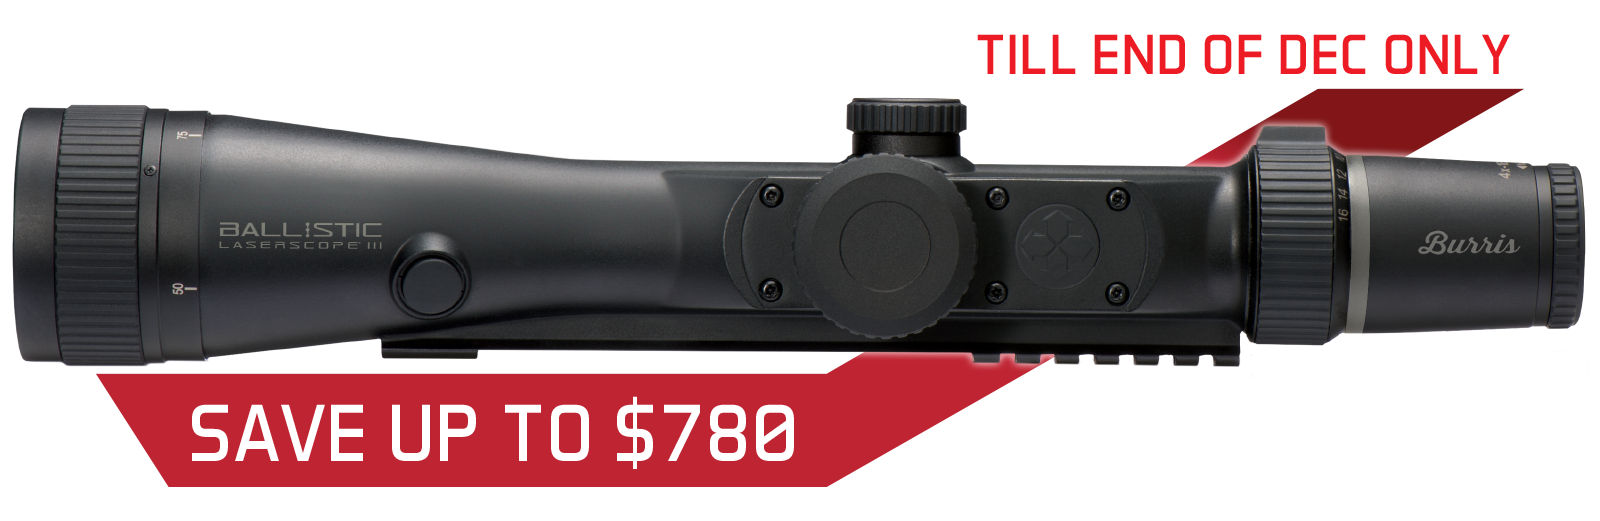 Burris Eliminator III Price Drop